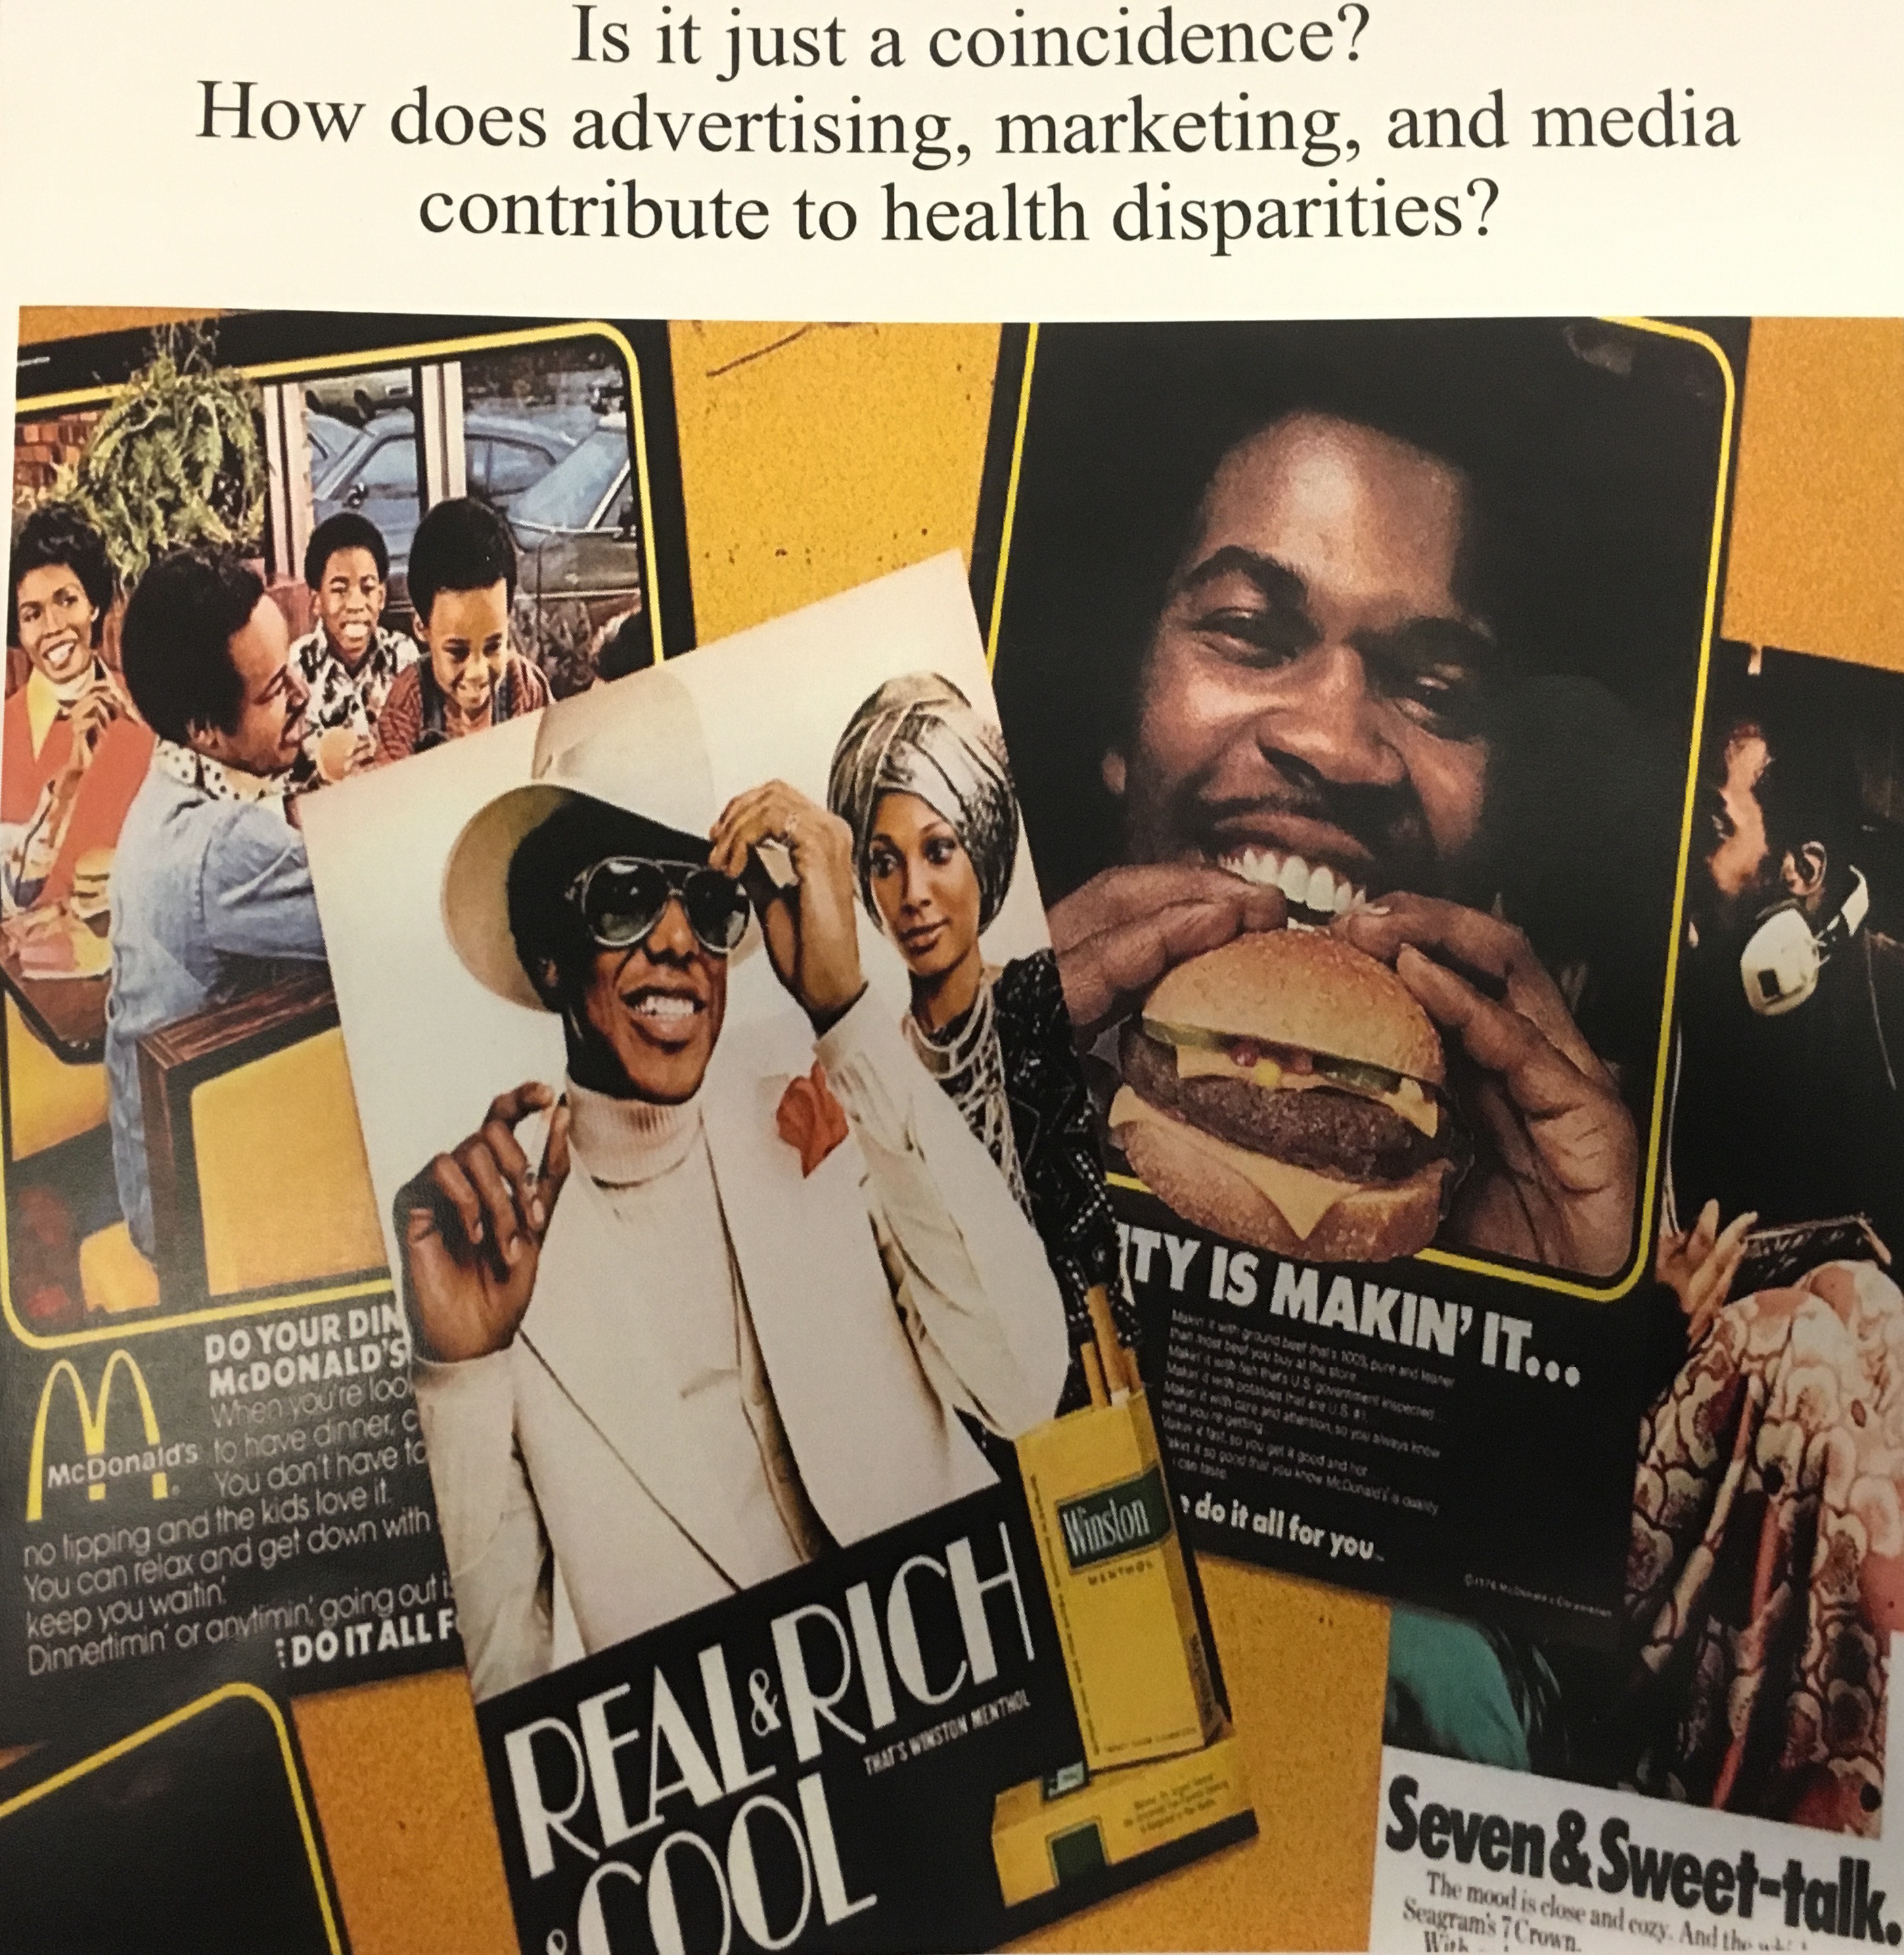 Shown above: examples of advertisements and media materials throughout the years targeting racial/ethnic minorities and ultimately contributing to health disparities. Image taken from cover of Pre-conference and Multicultural Mixer Program materials.